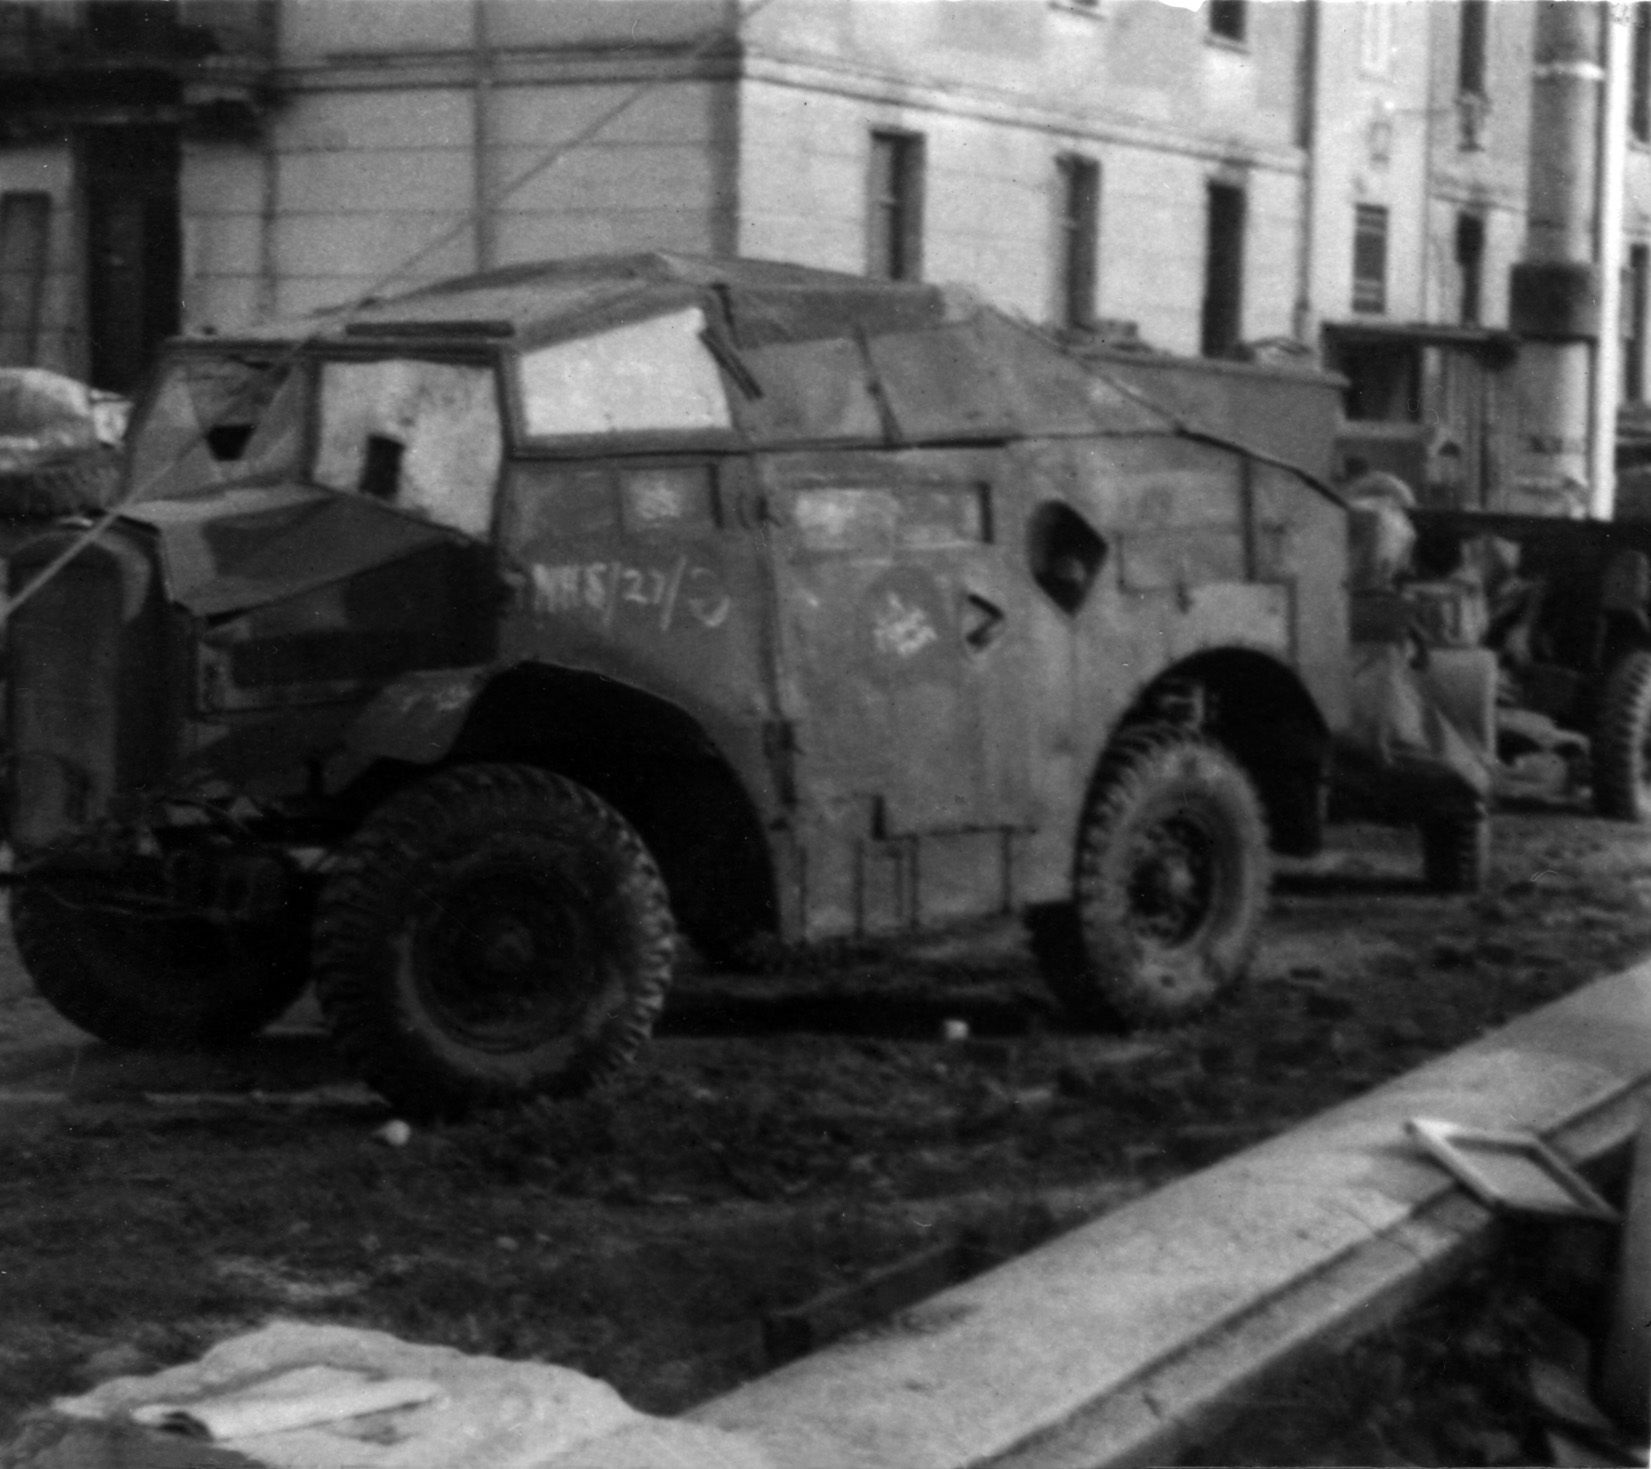 Quad Tractor, probably in Italy